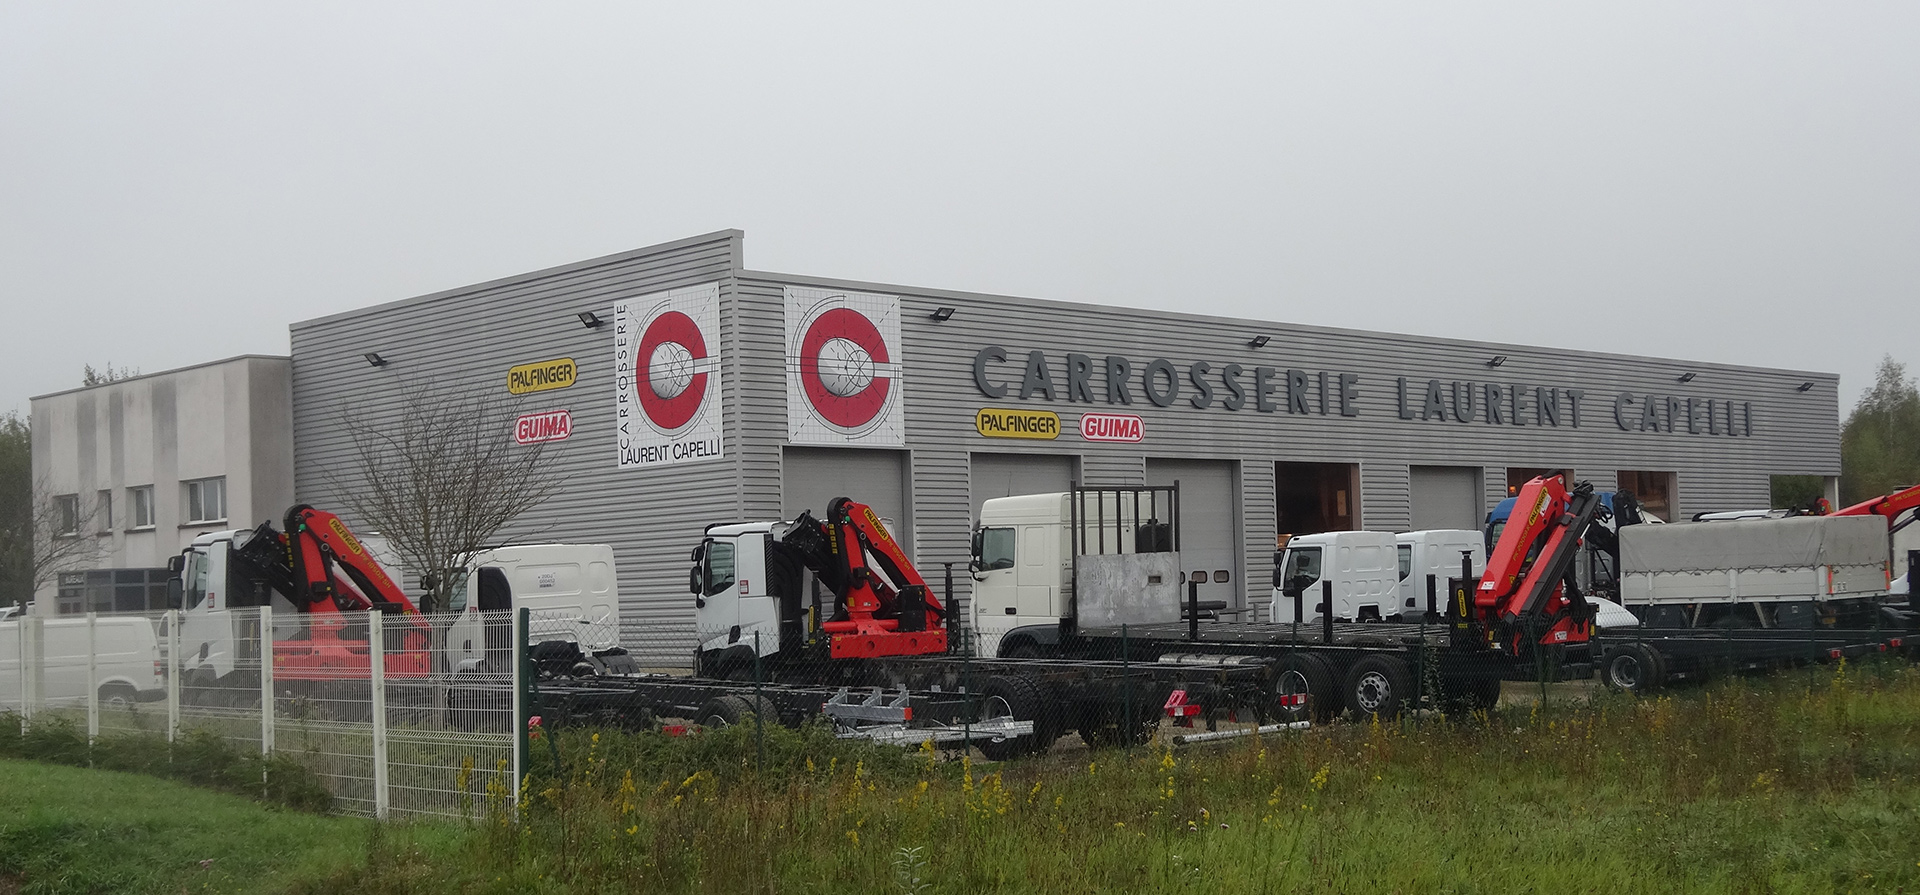 Carrosserie Laurent Capelli